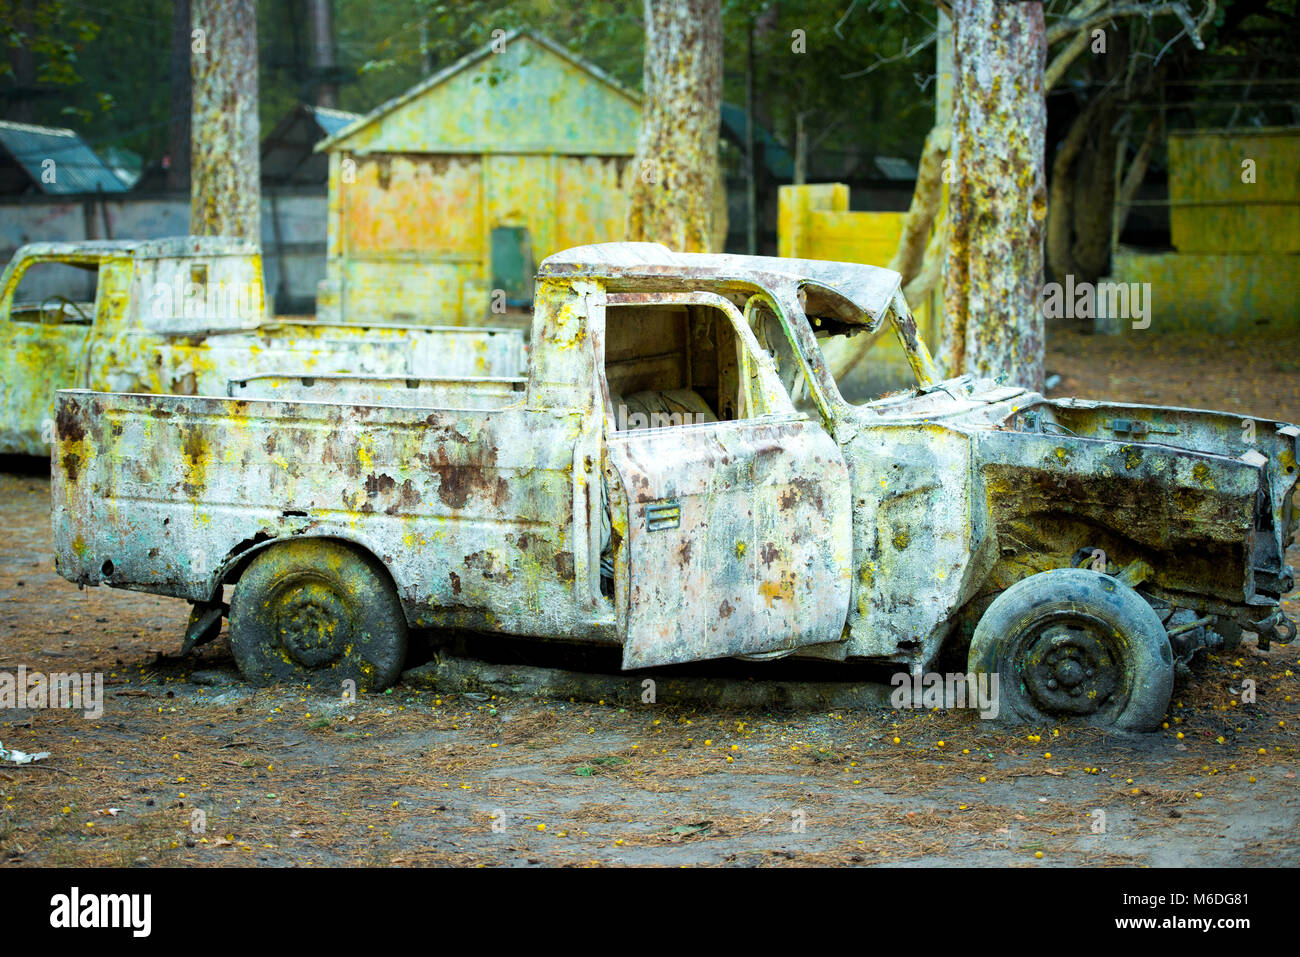 An old rusty car in paint from paintball. - Stock Image